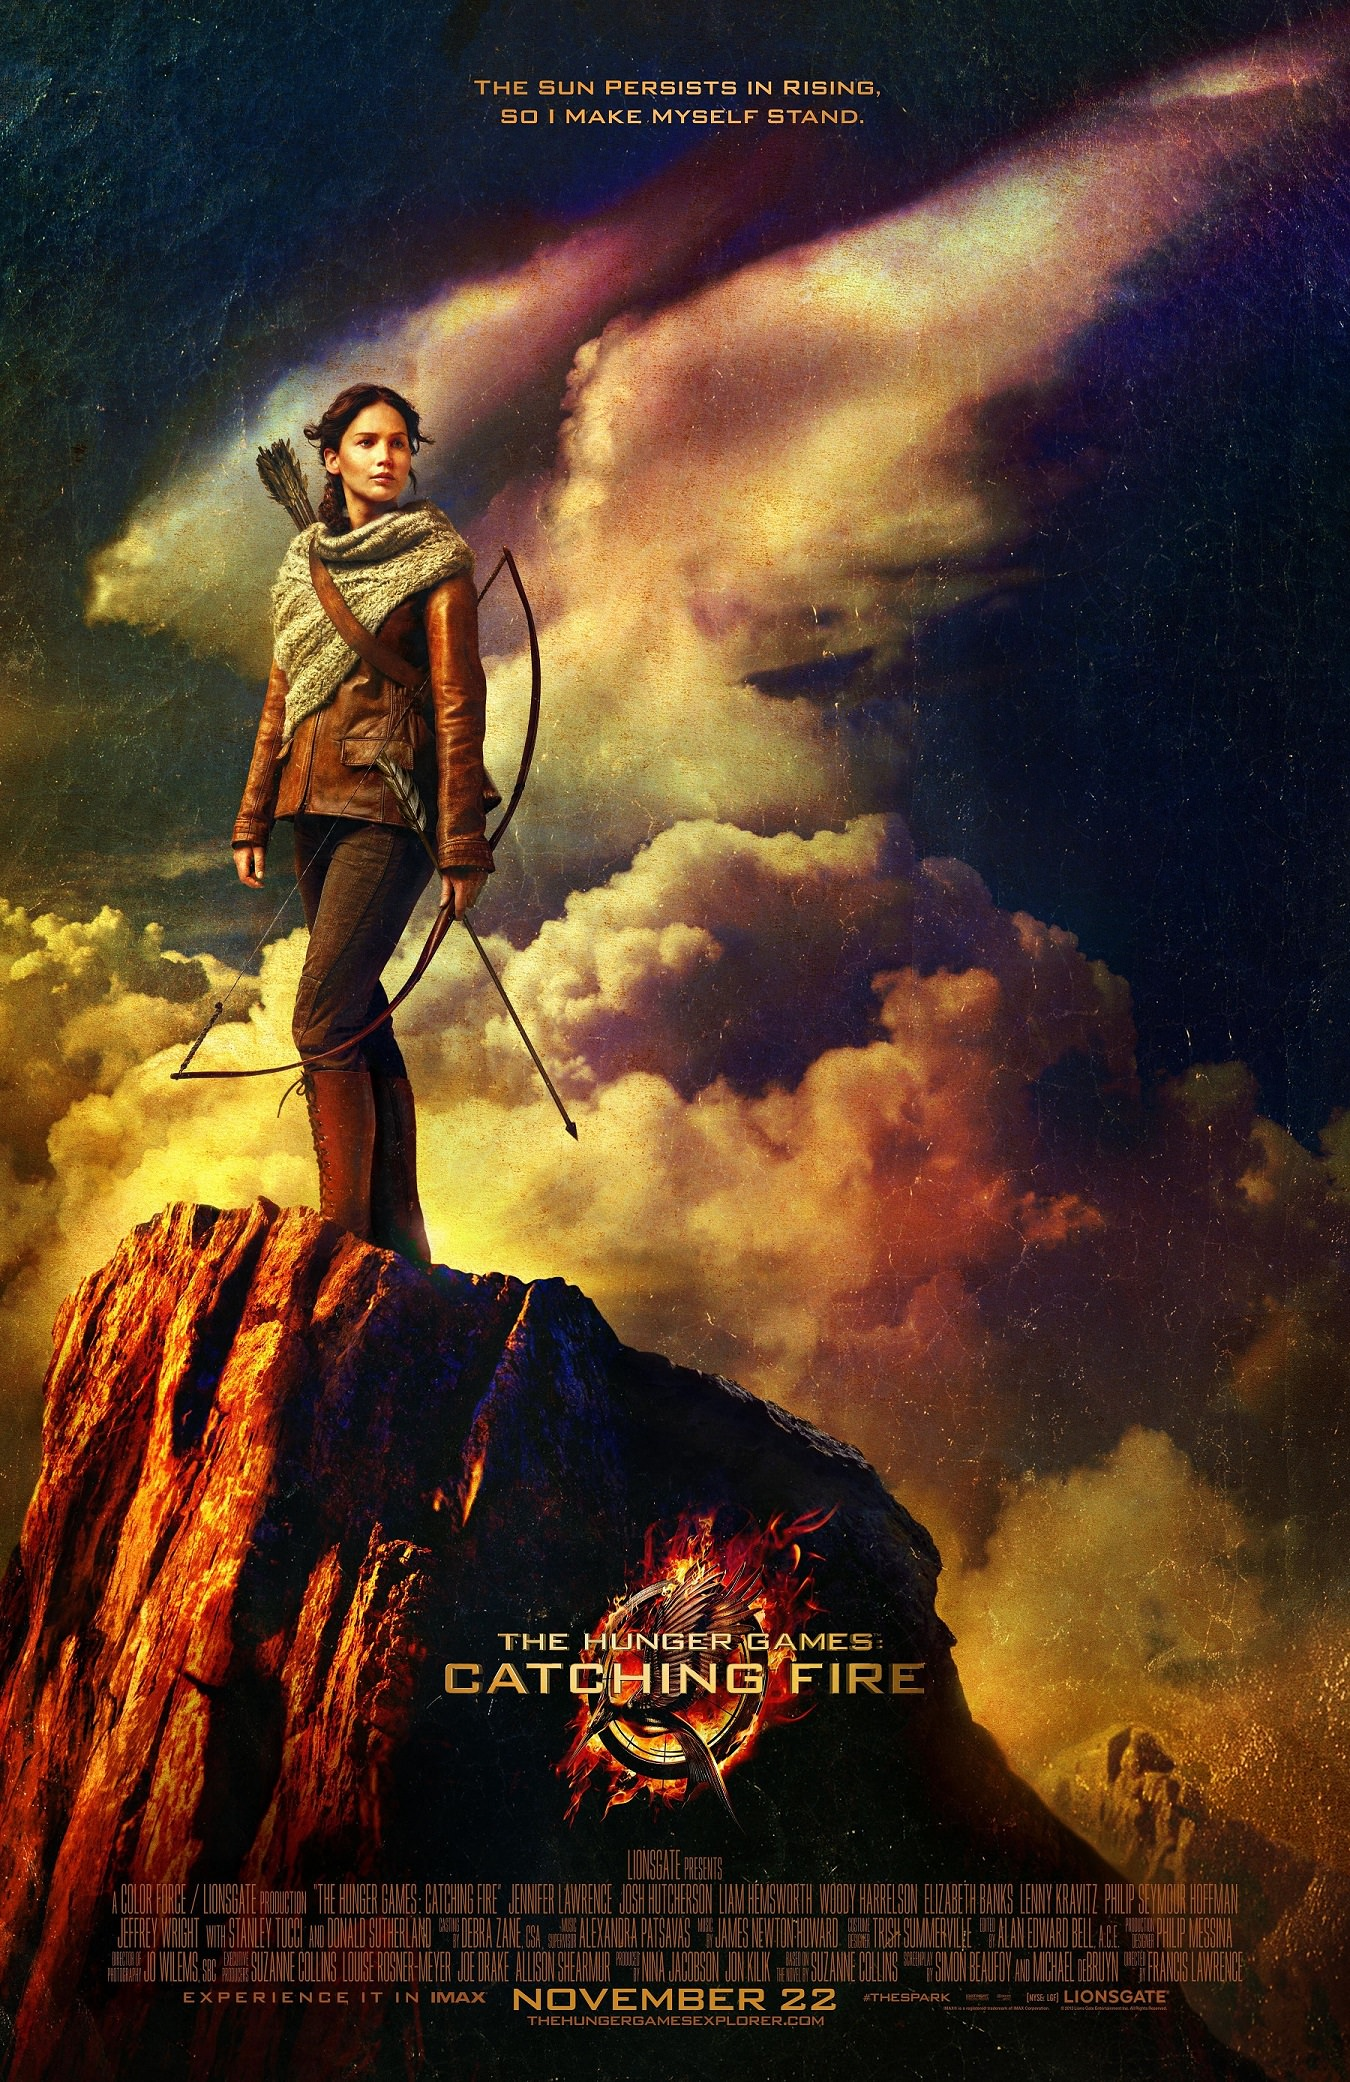 The Hunger Games Series Is Finally Catching Fire